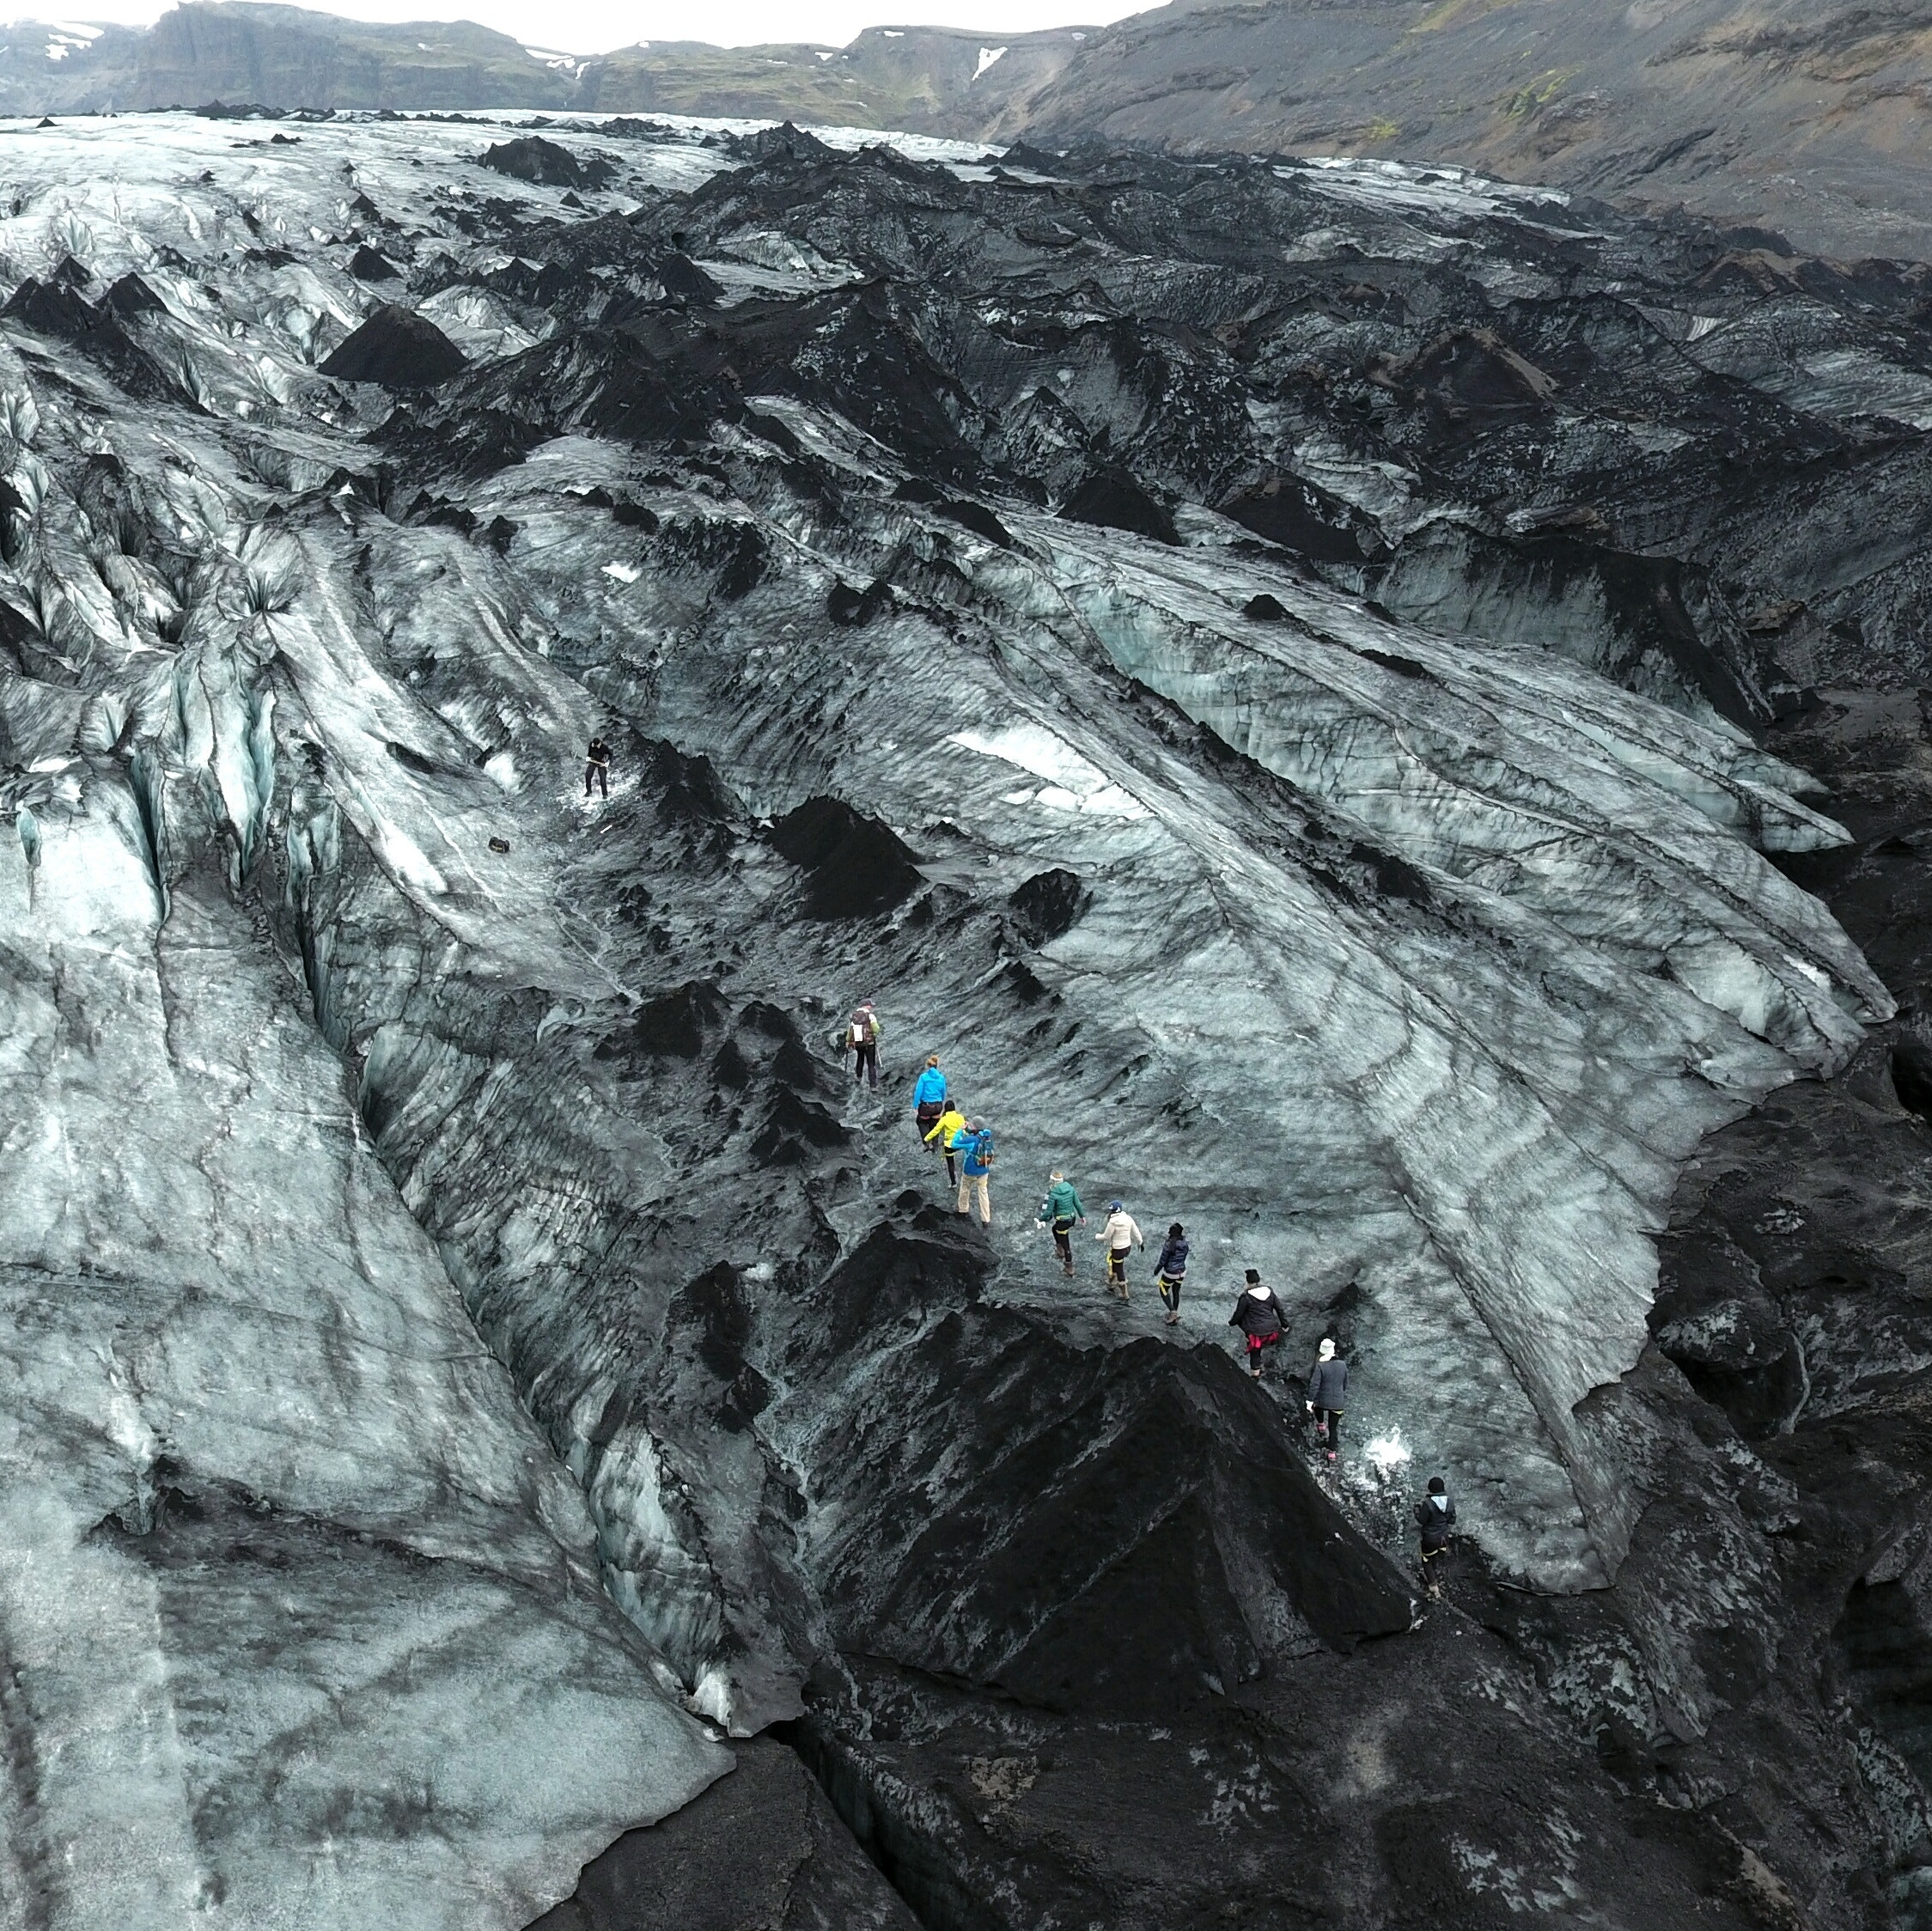 Sólheimajökull is renowned for its colouration, with powder white snow, black ash, and blue ice.